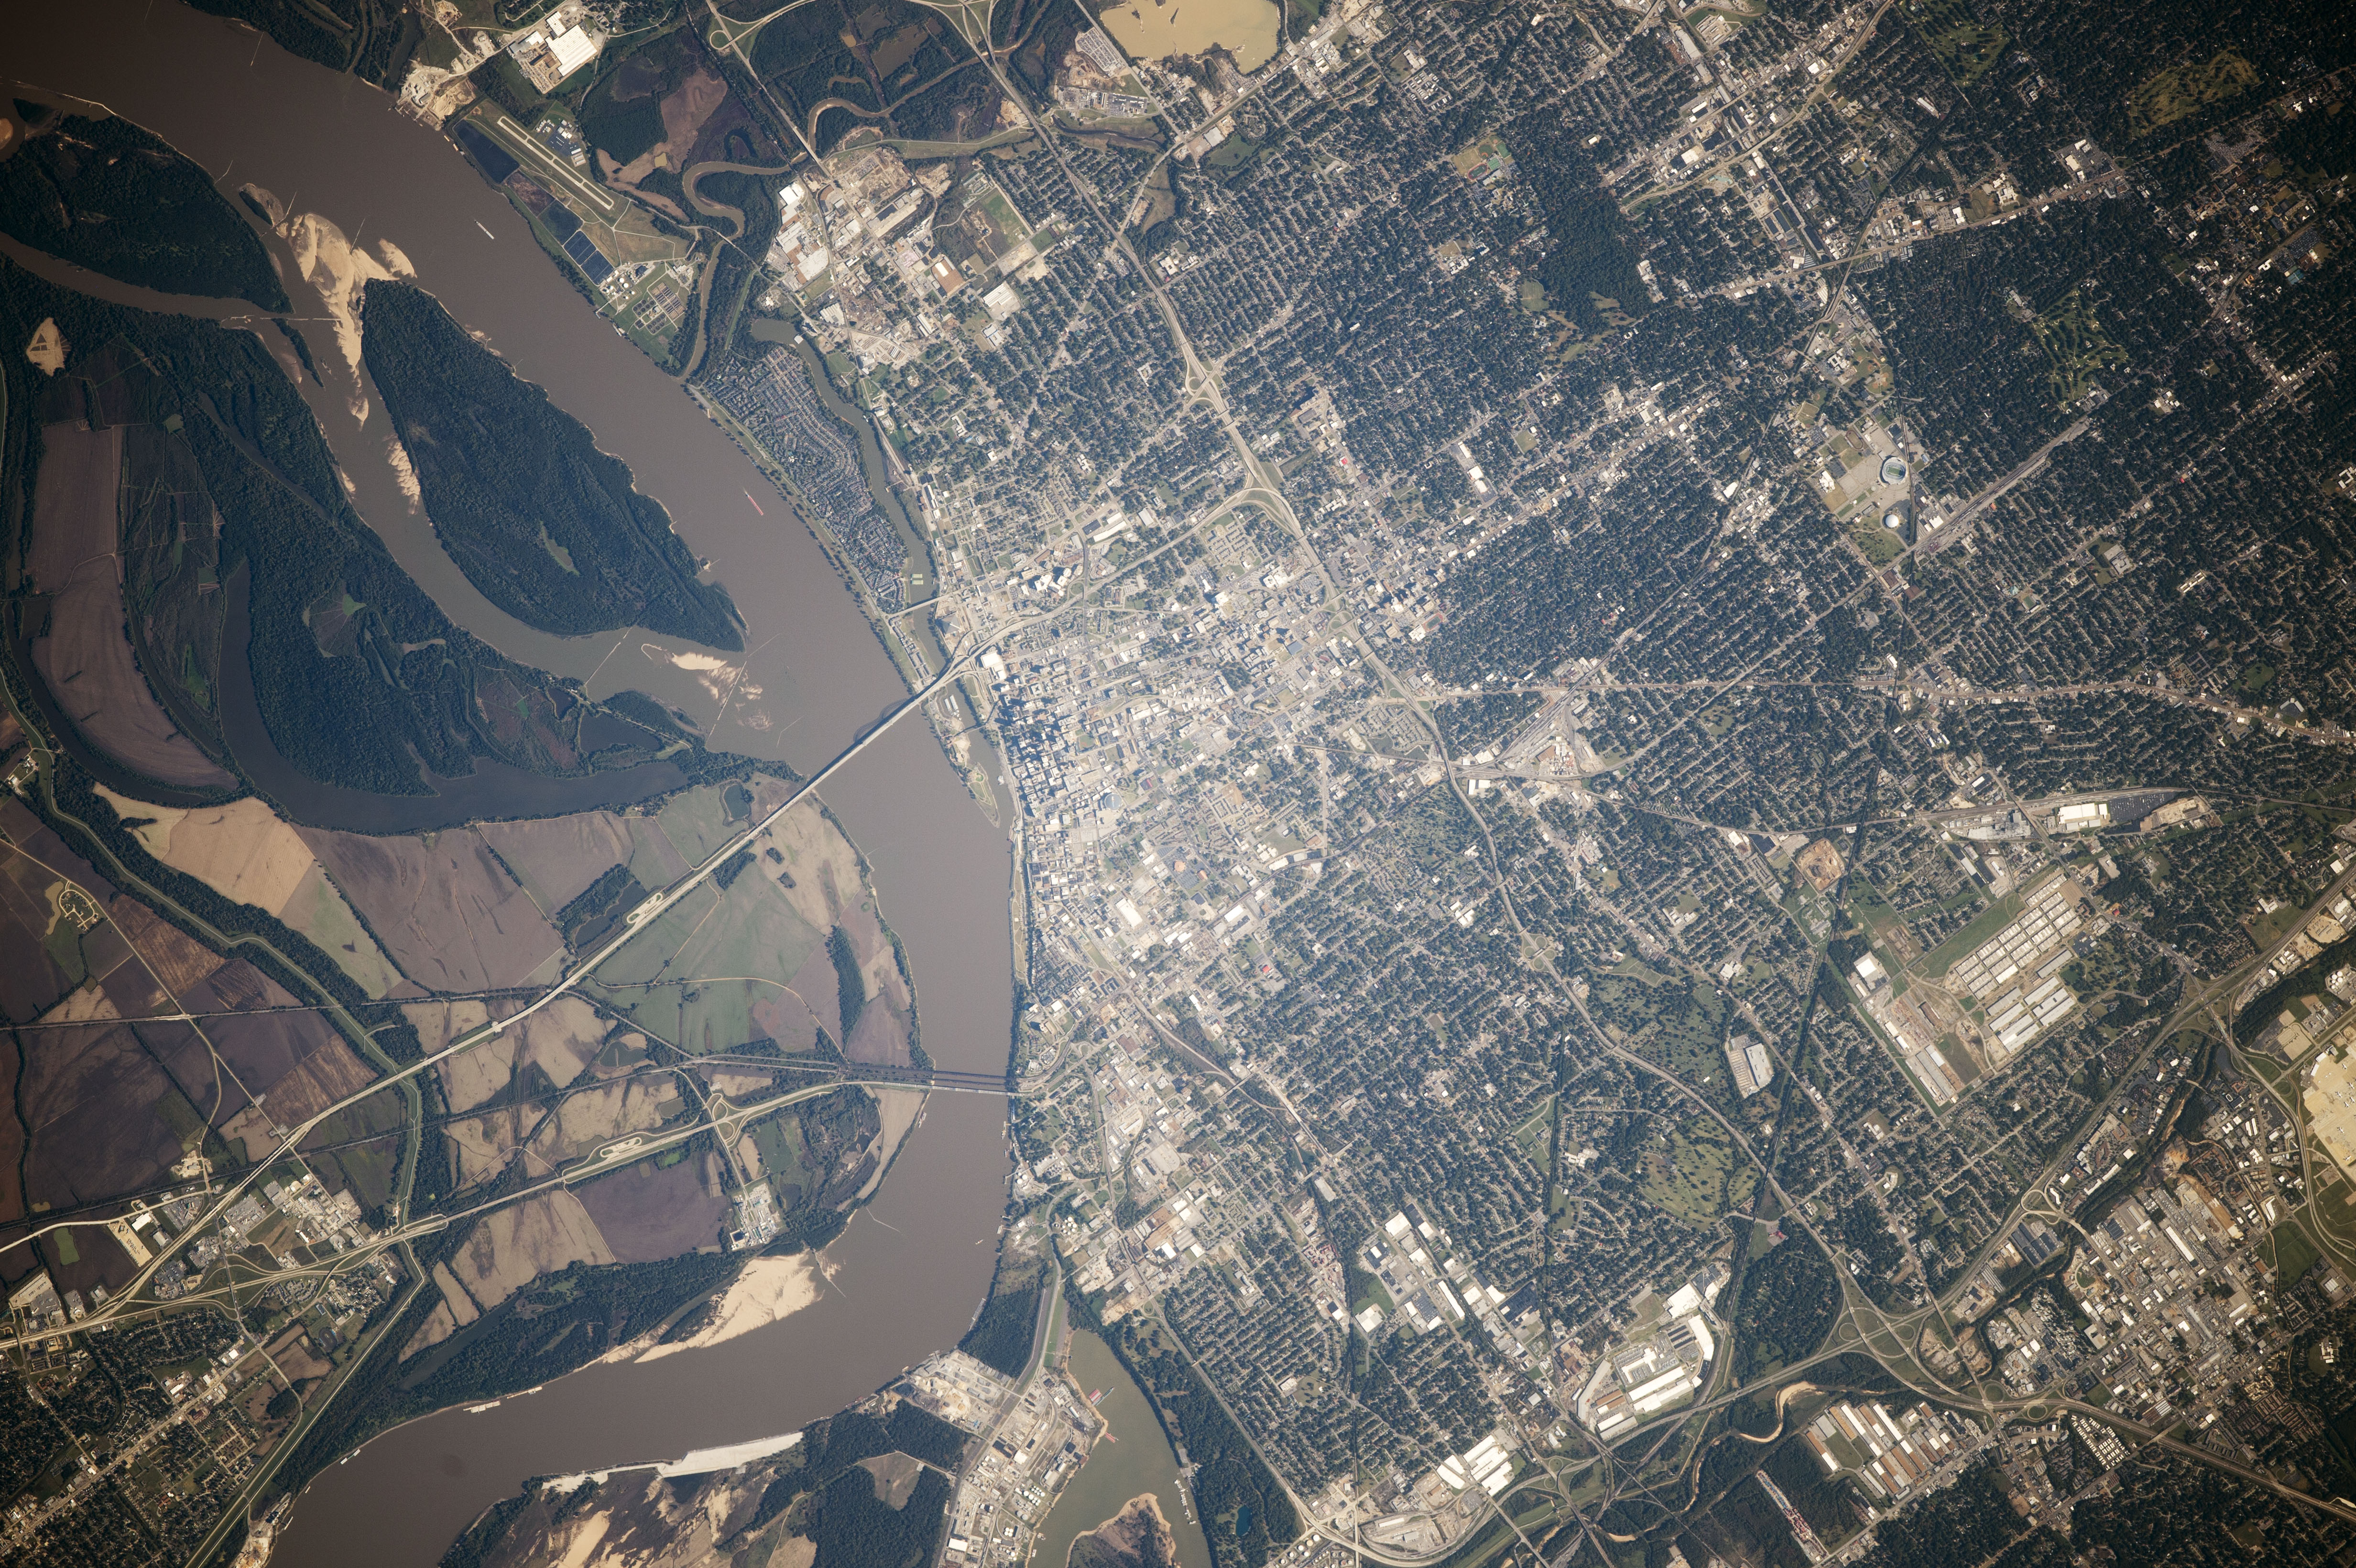 Memphis From Space